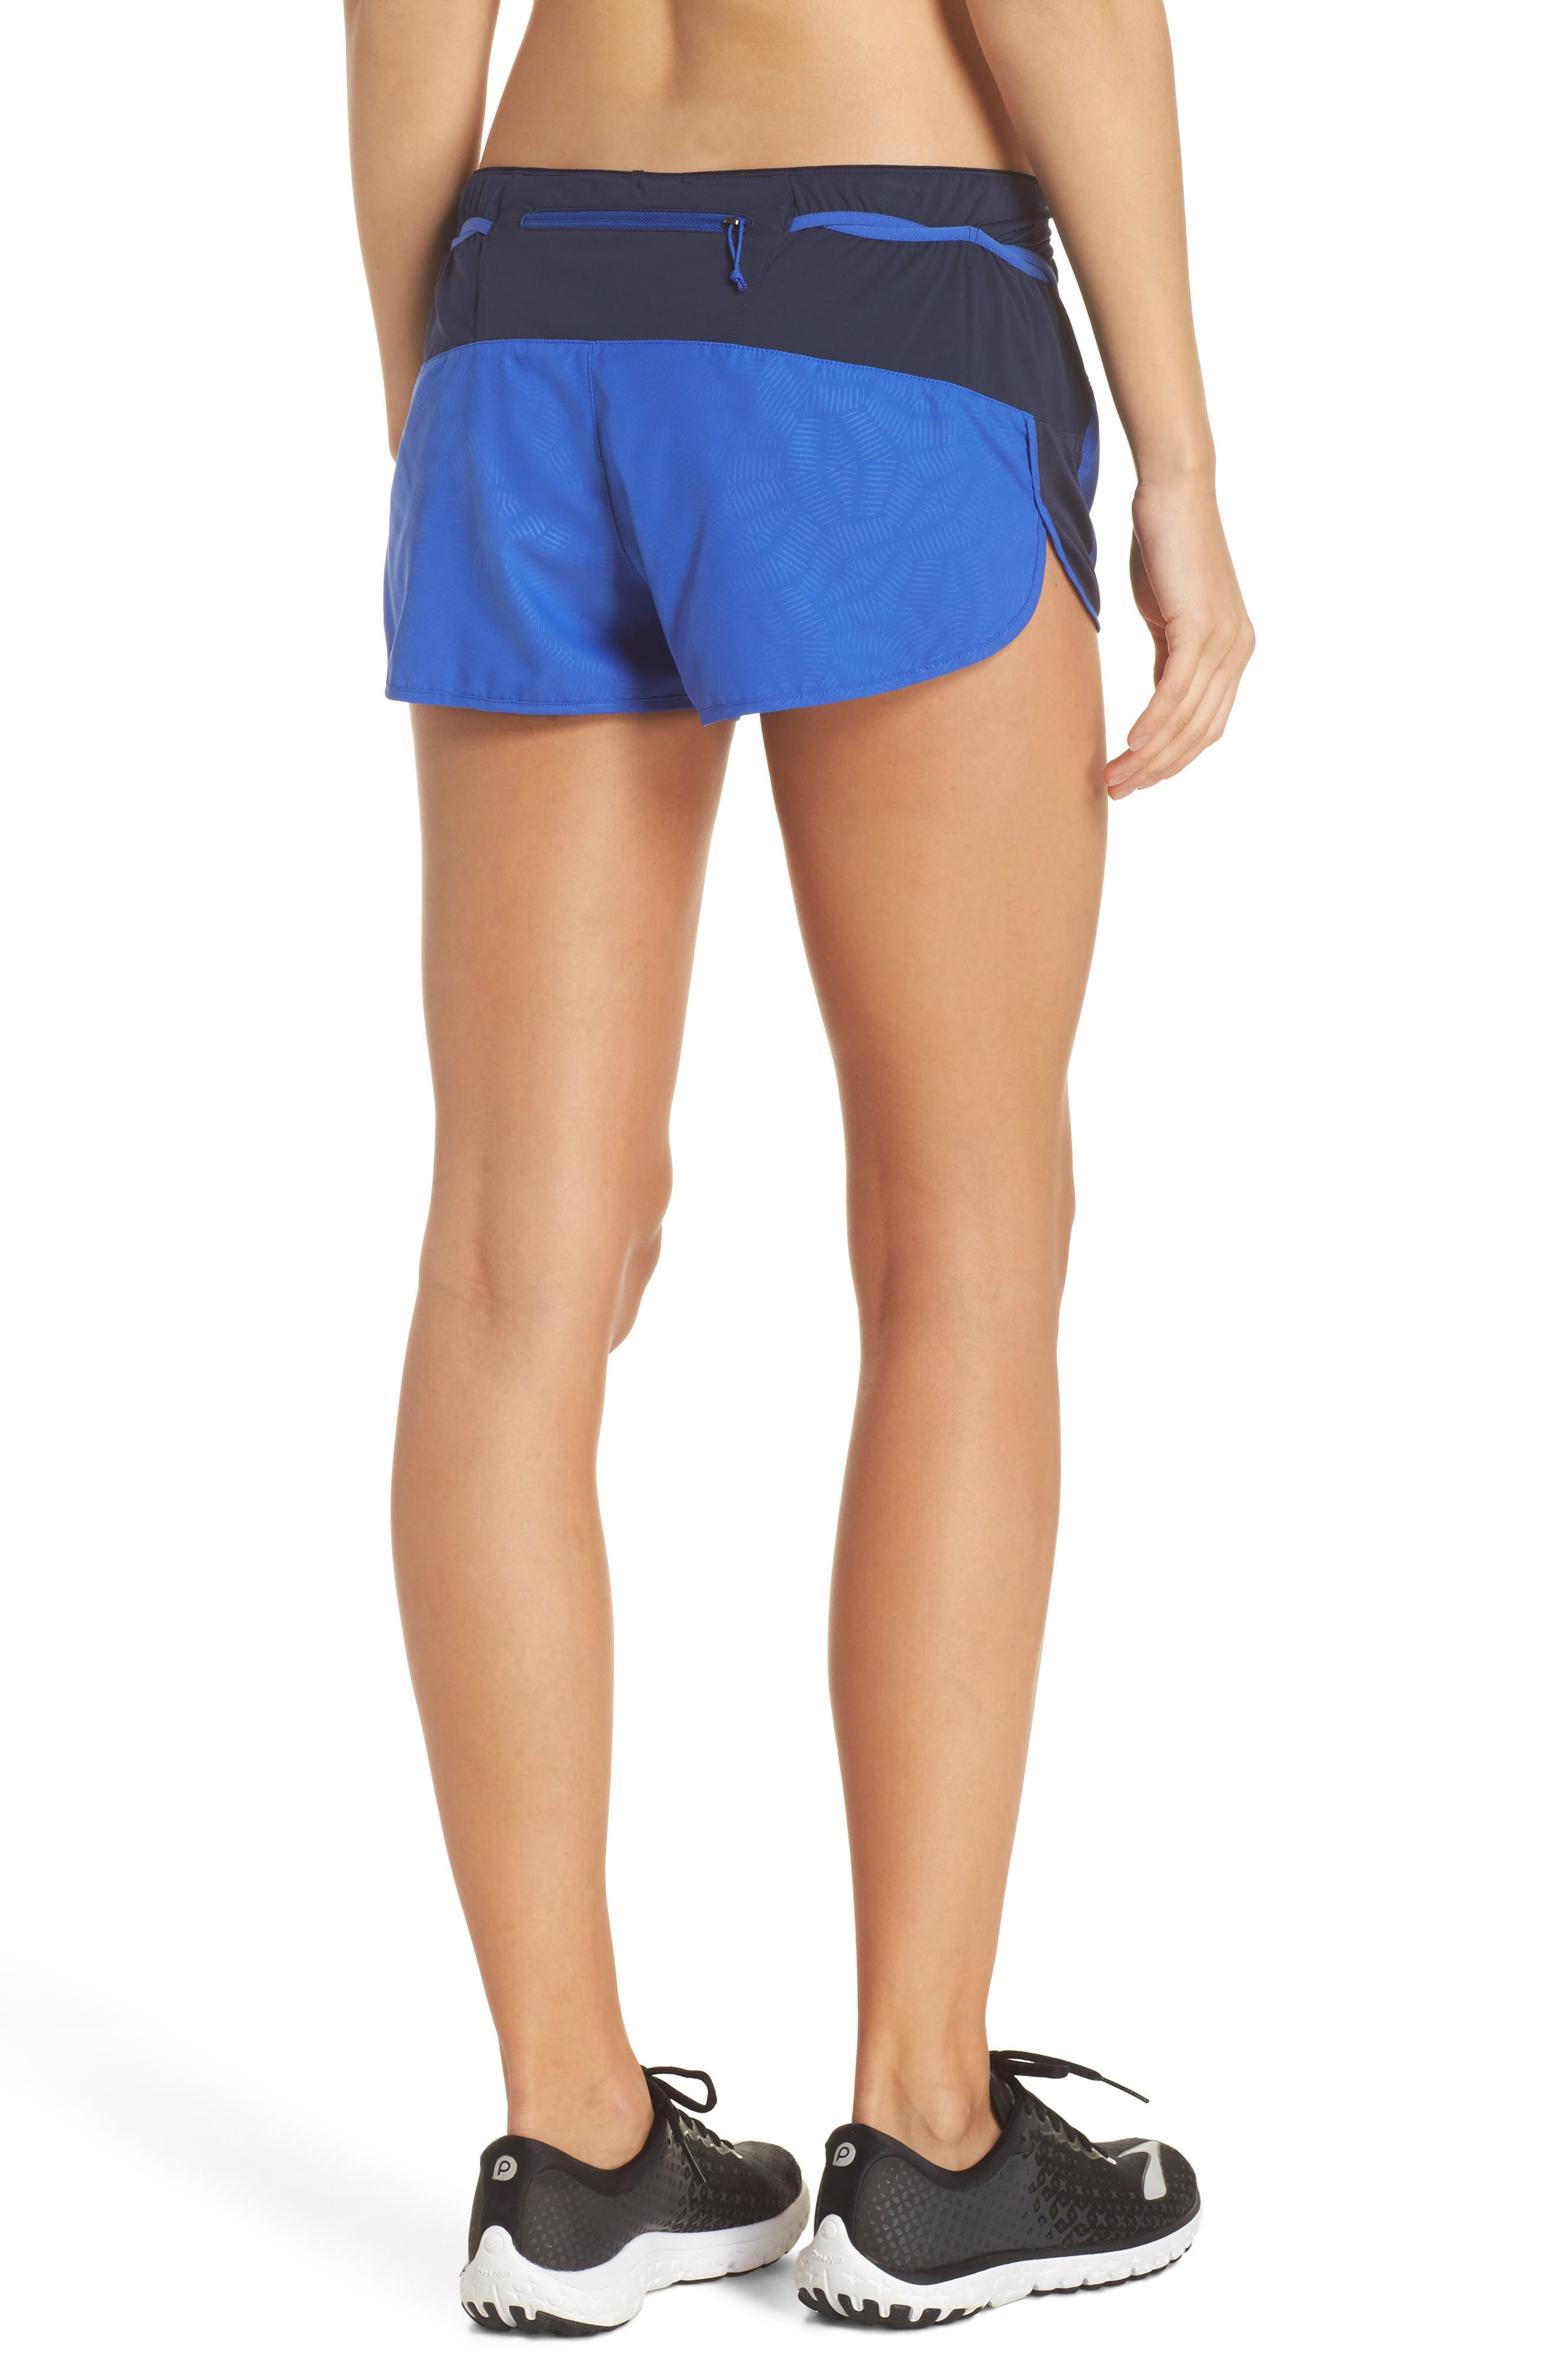 Strider Pro Trail Running Shorts,                             Alternate thumbnail 2, color,                             Hexy - Imperial Blue